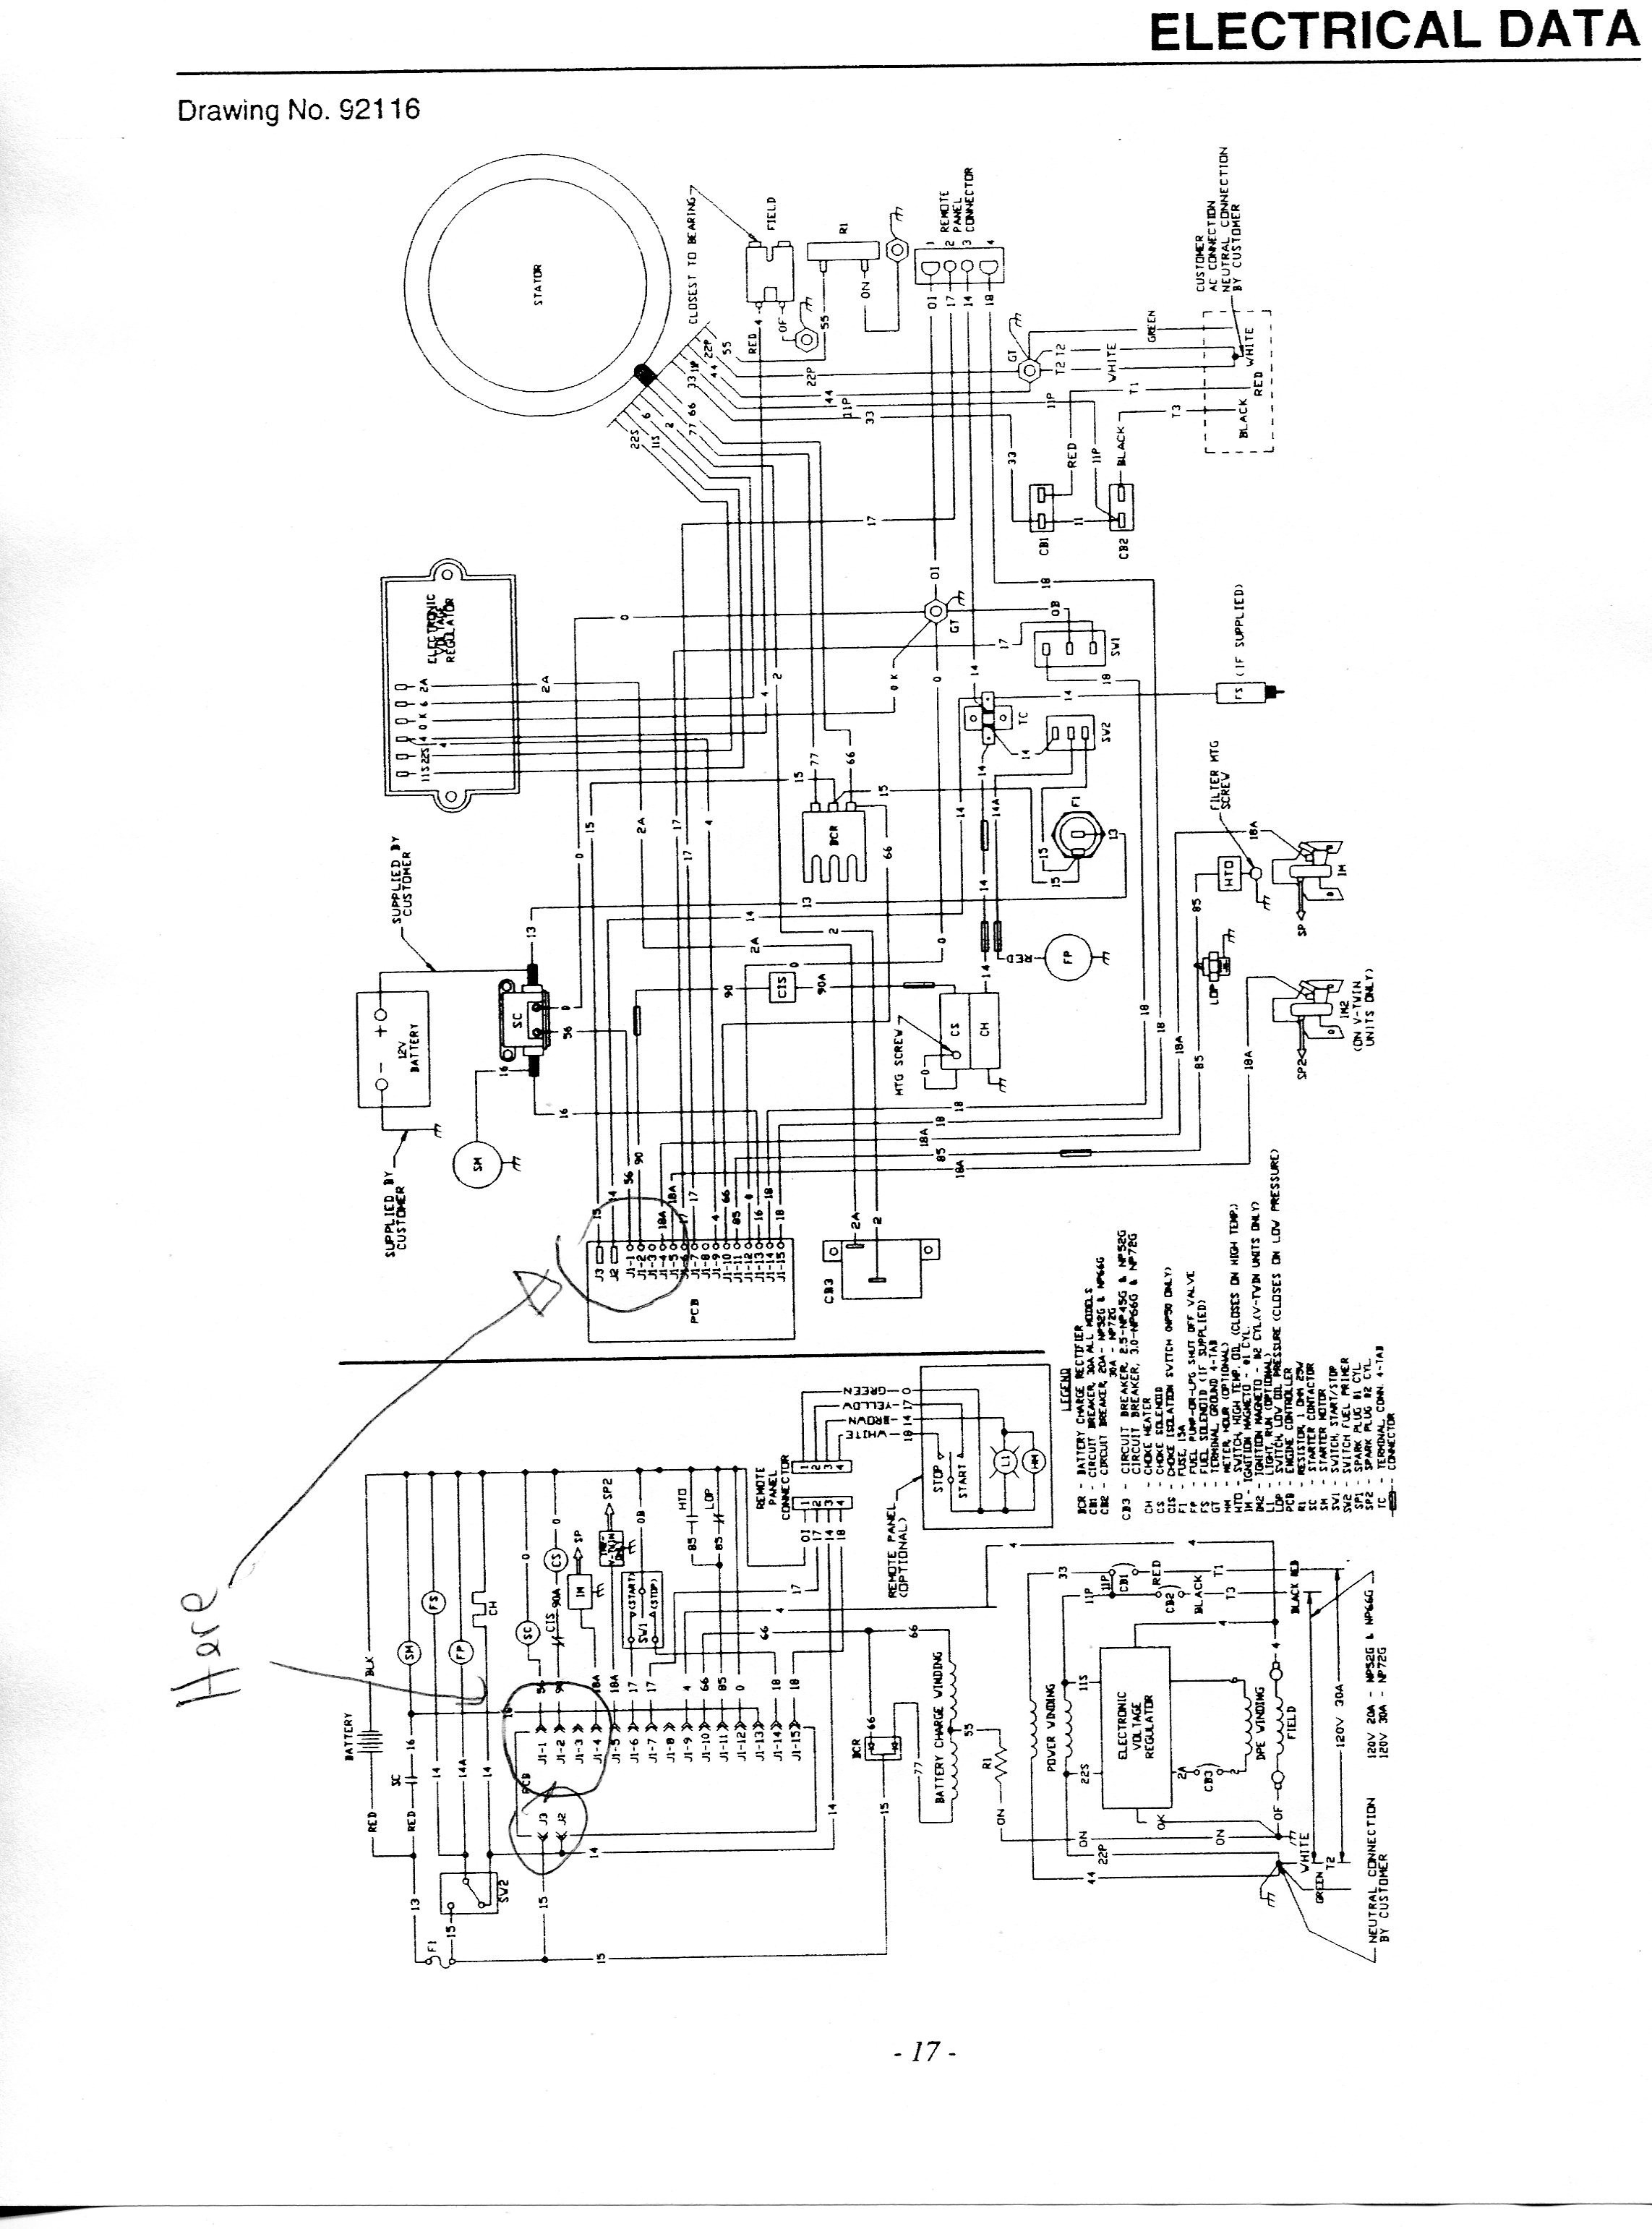 J1 Wiring Diagram - Wiring Schematics on